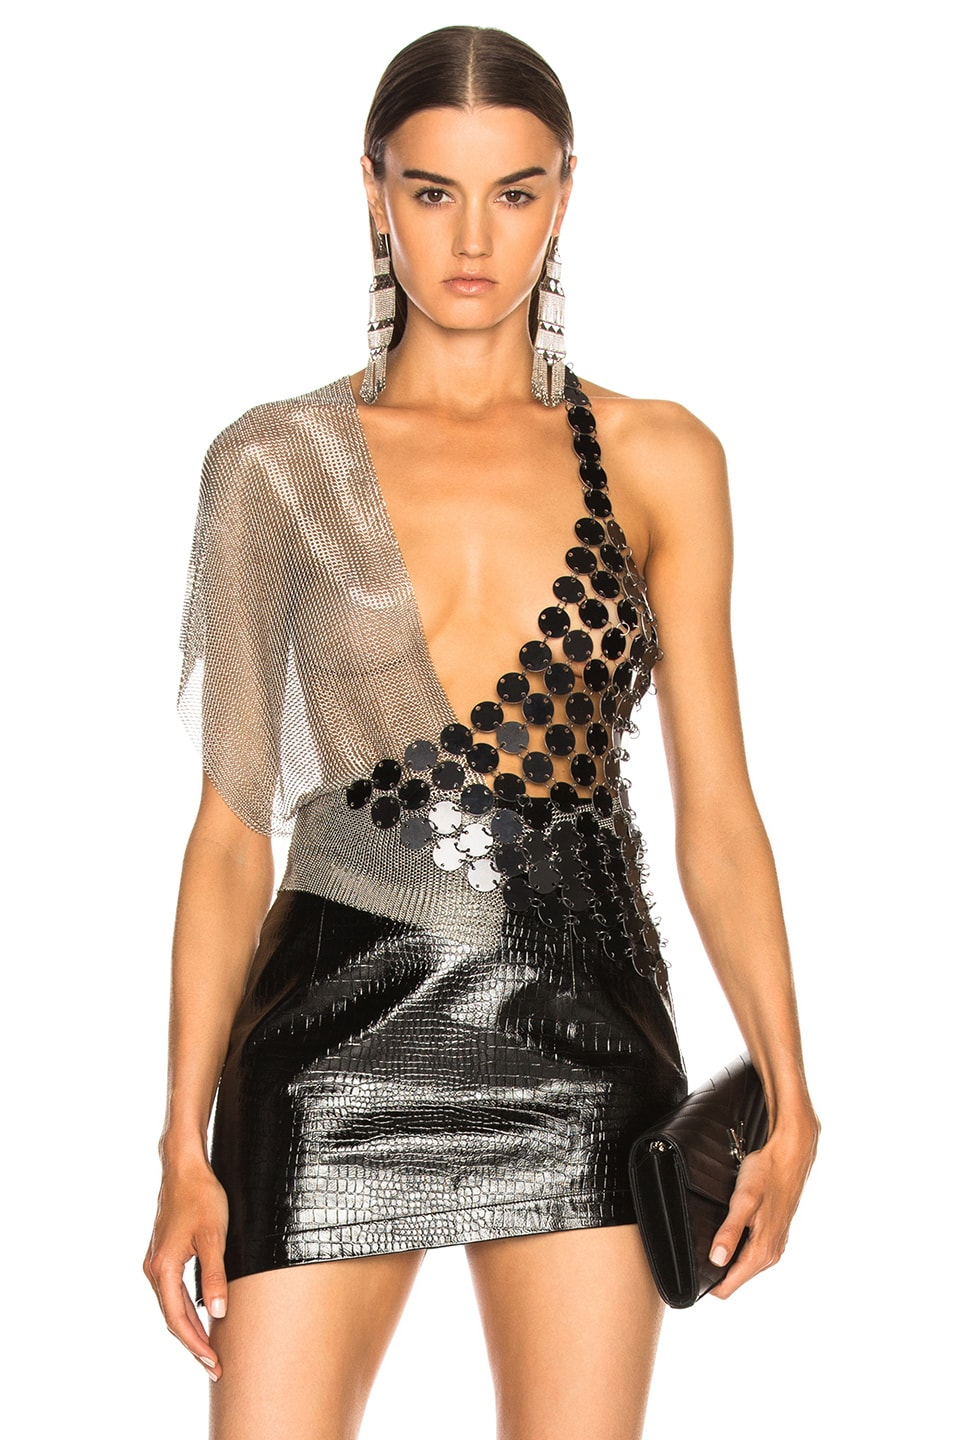 FANNIE SCHIAVONI SCALE AND MESH TOP IN METALLIC SILVER